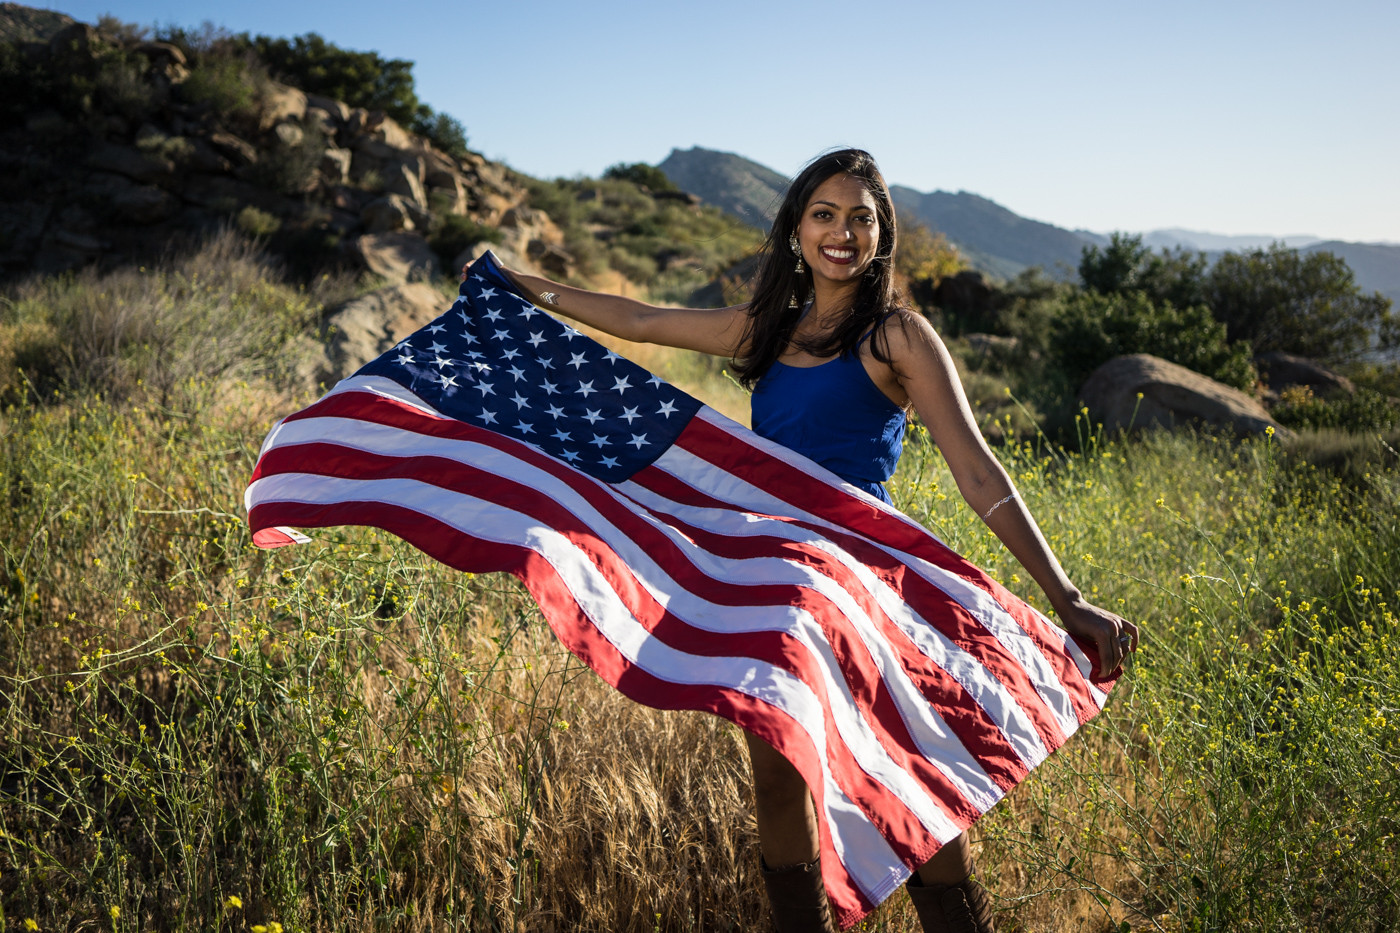 4th-of-july-american-woman-flag-portrait-sunset-vaish-front